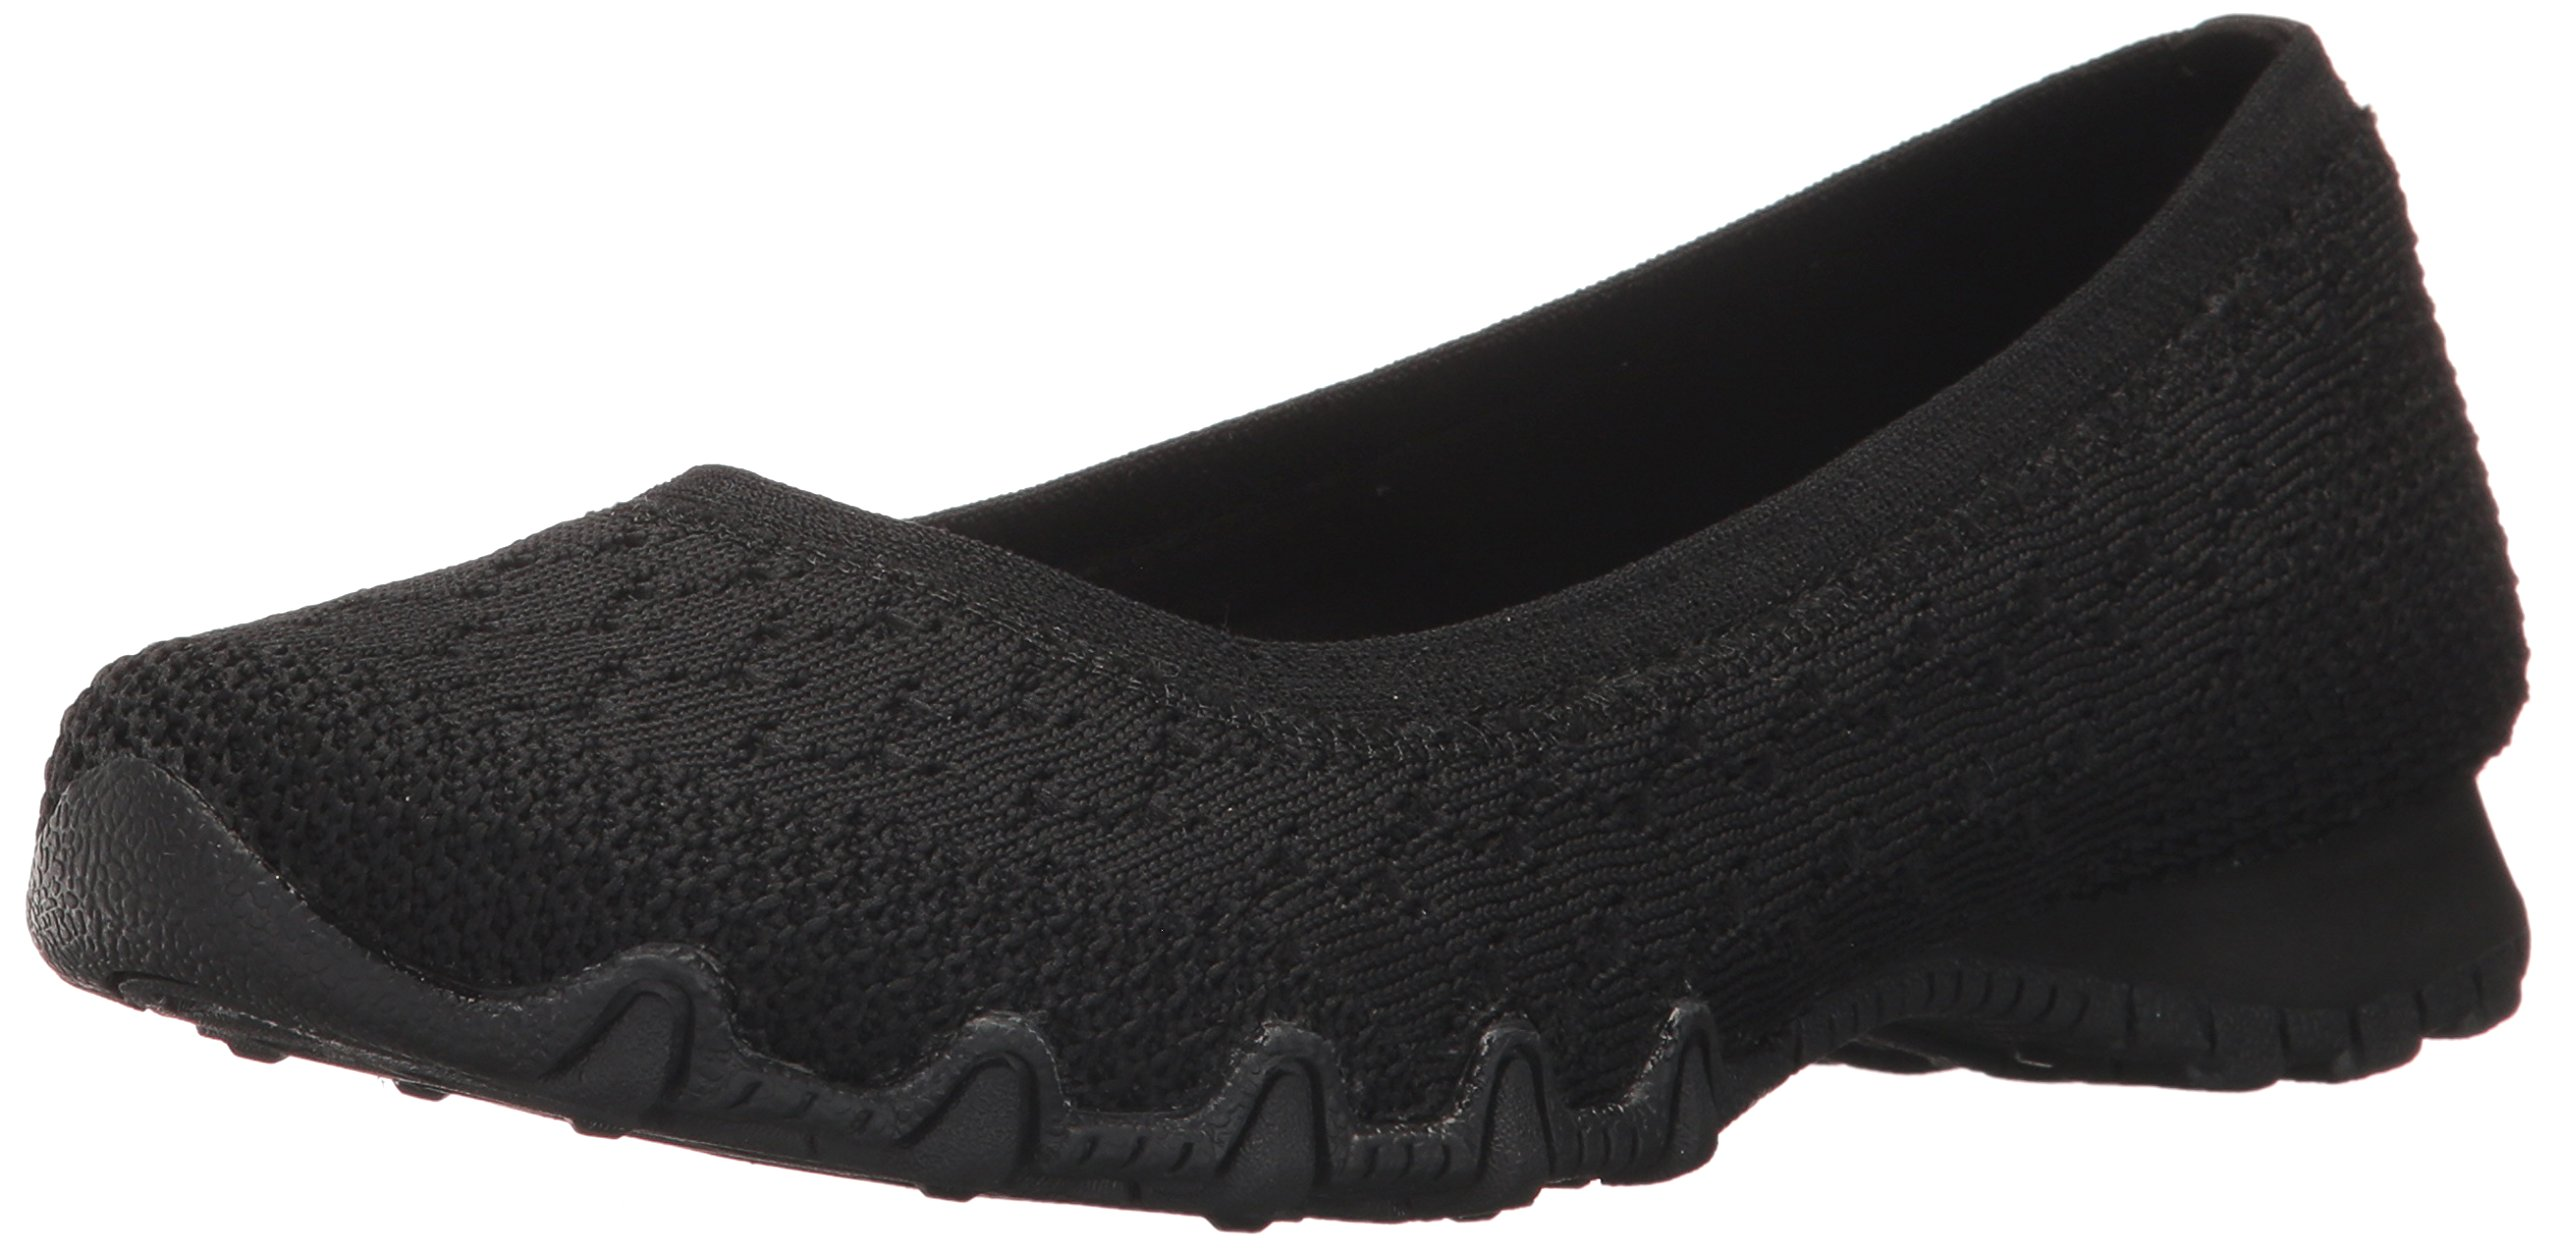 Skechers Women's Bikers-Witty Knit Ballet Flat, black, 10 Extra Wide US by Skechers (Image #1)